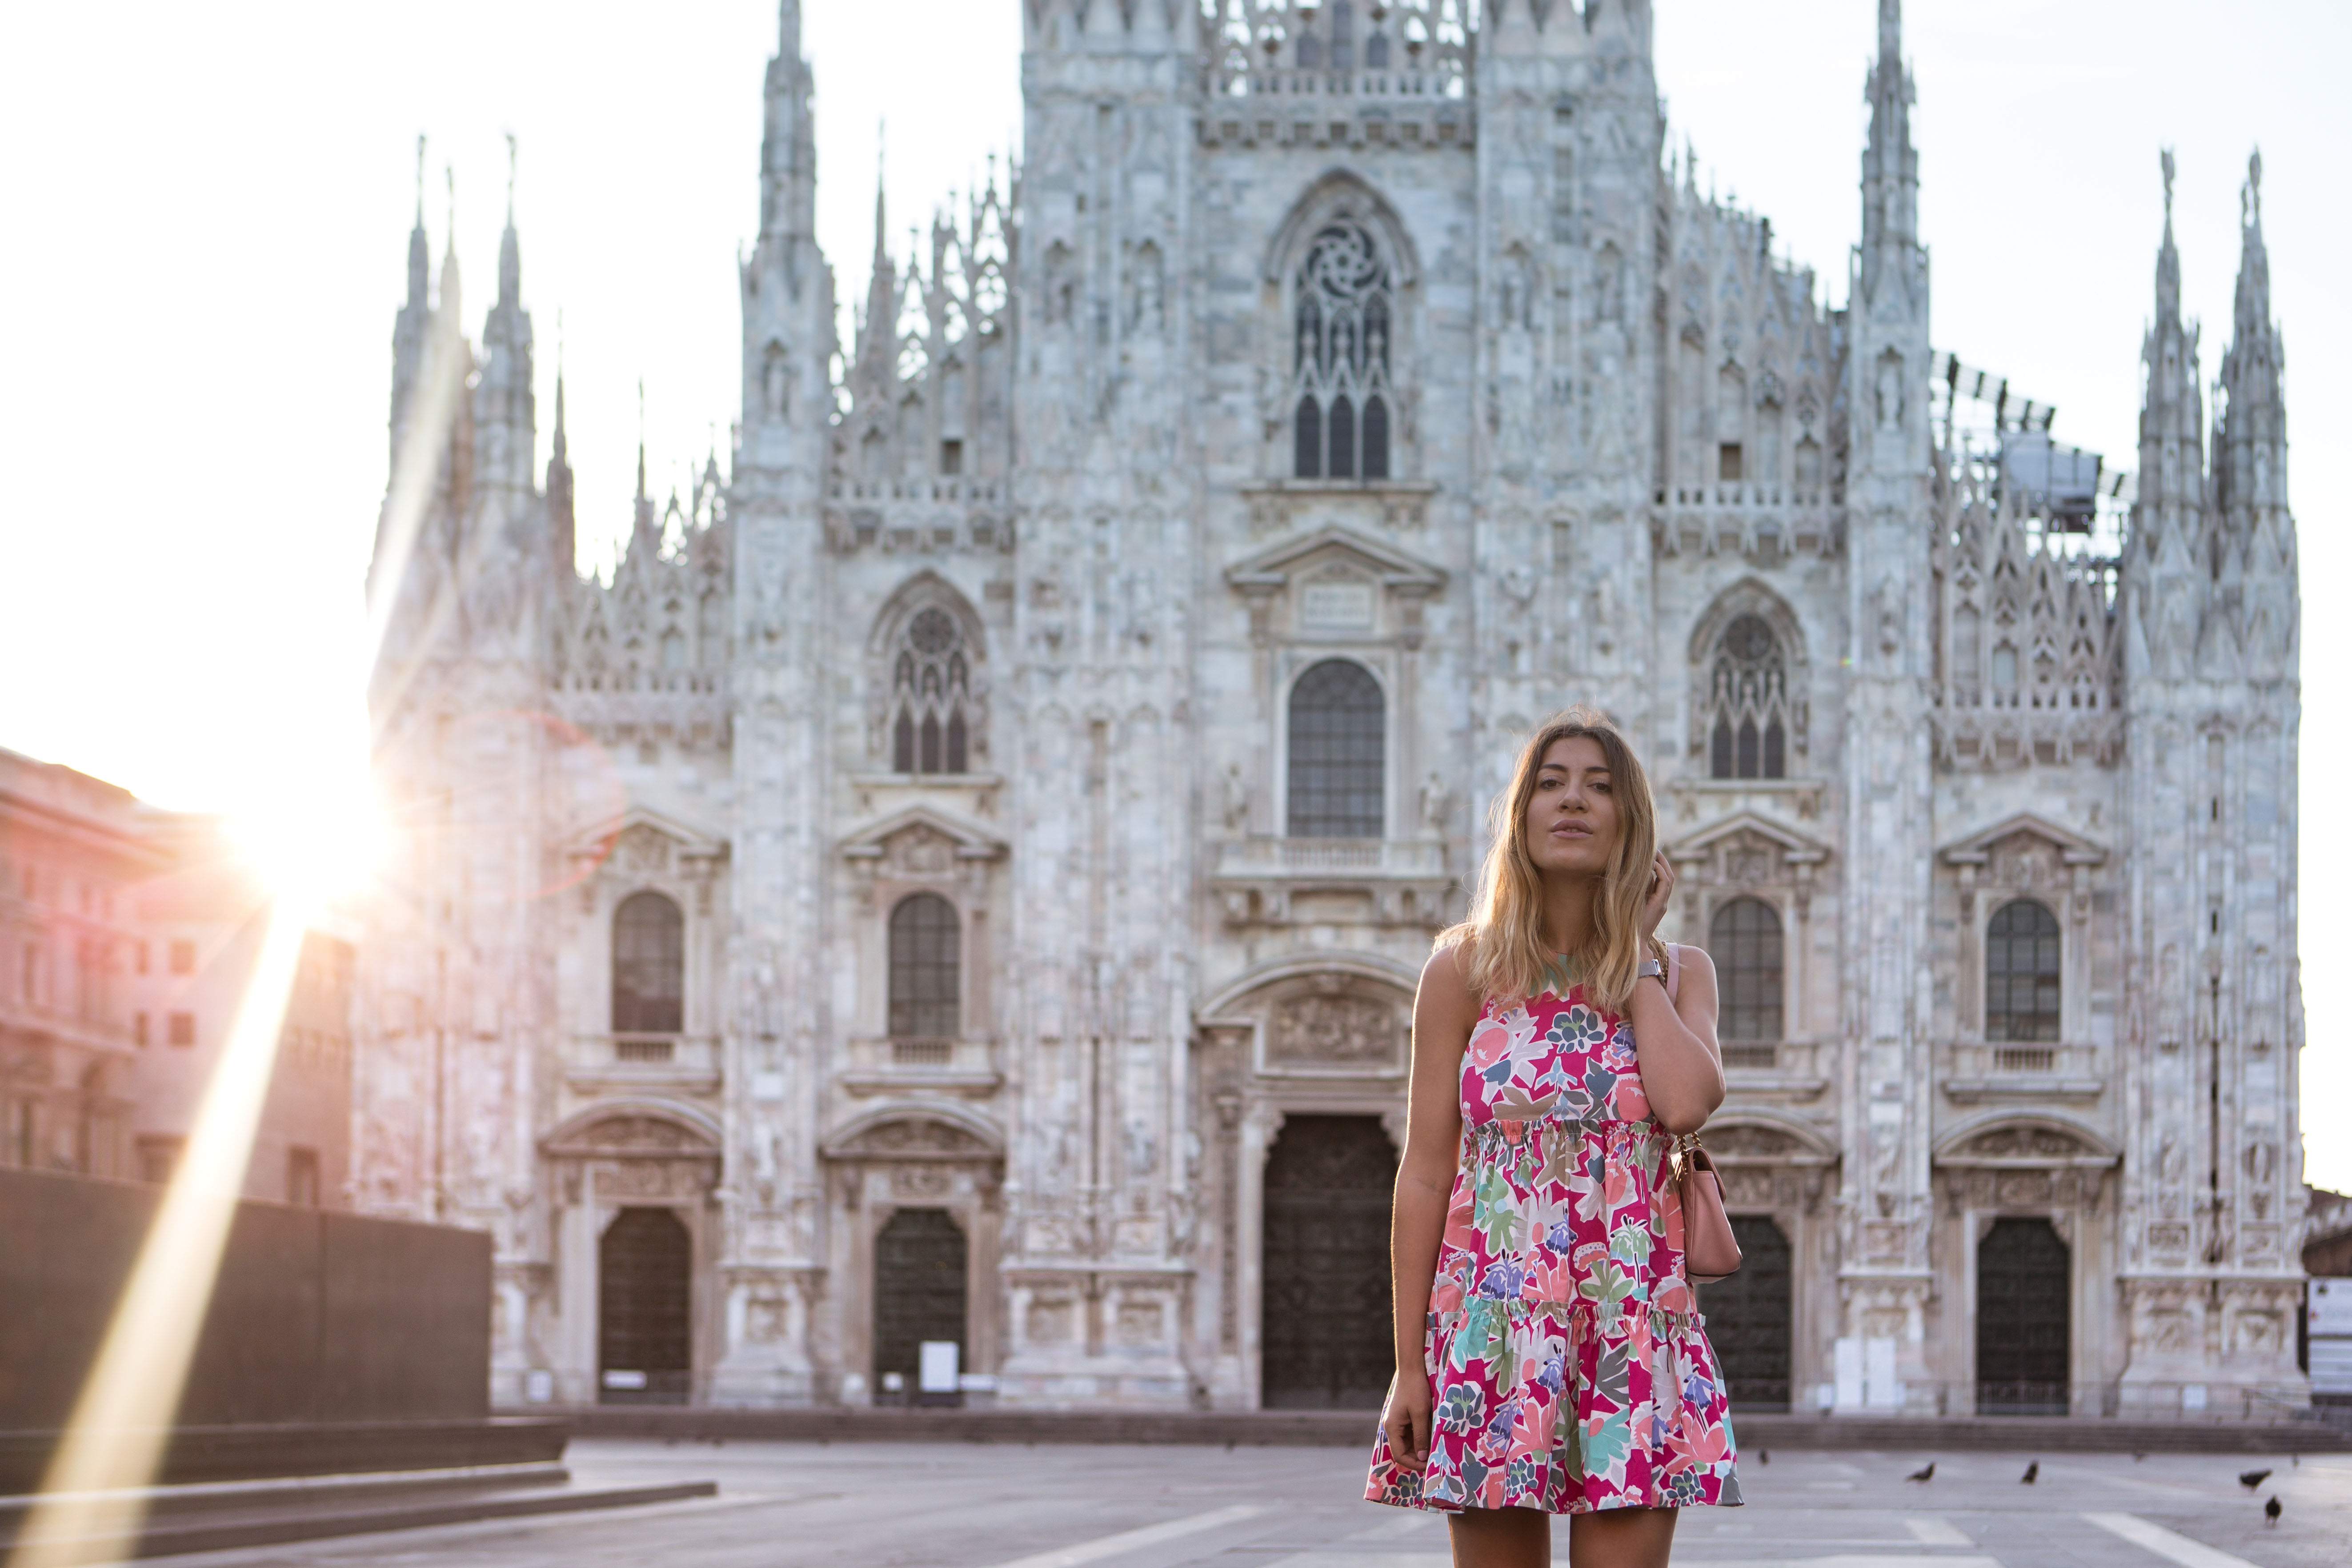 milan duomo visit wore italian thelondonthing bloggers landmarks favourite overly nonetheless photographed say know